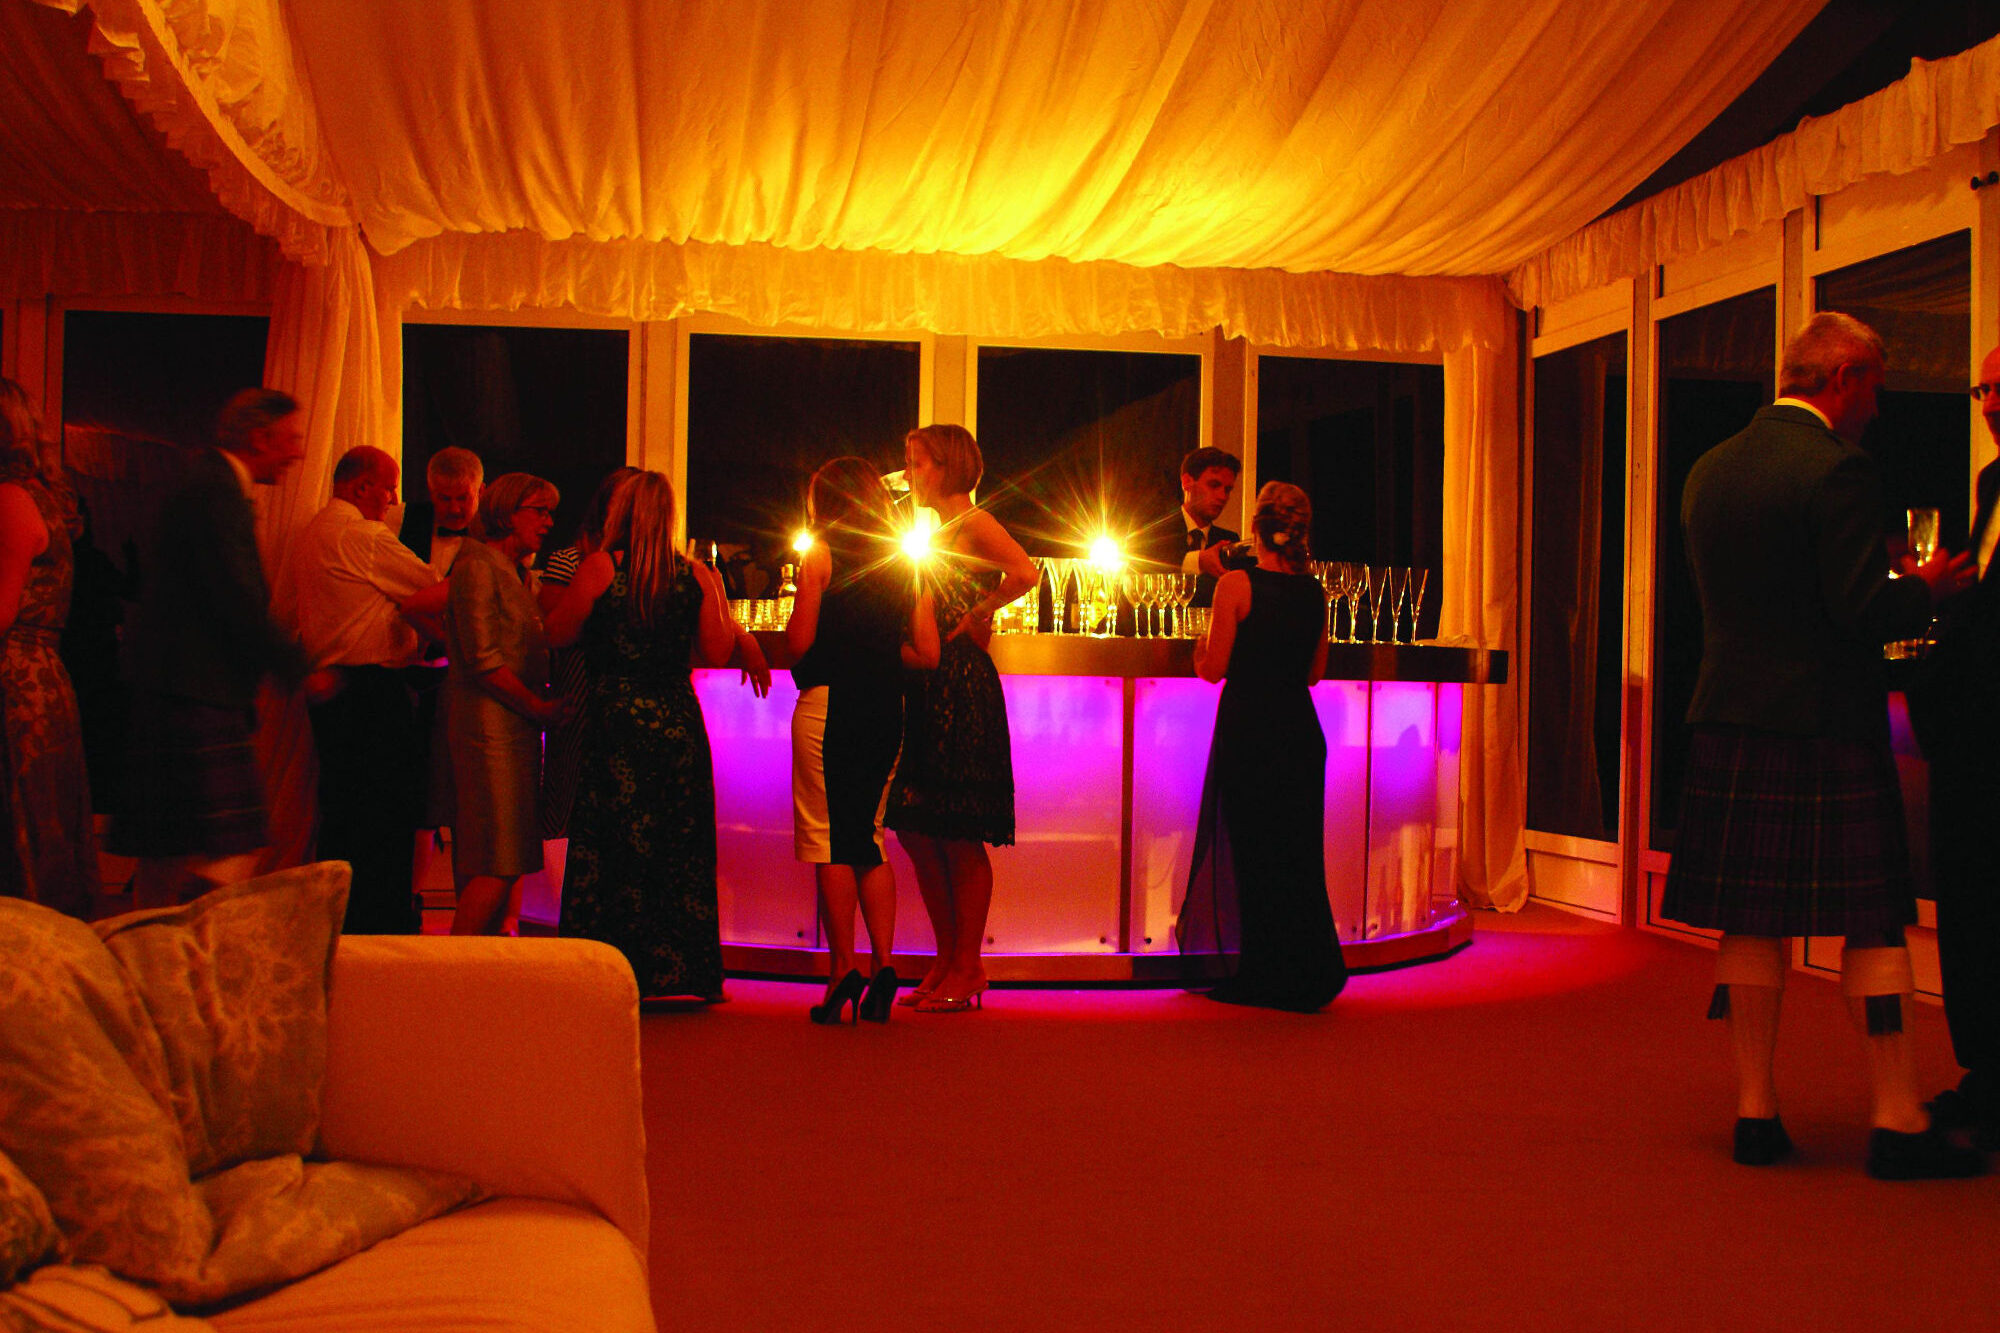 Private Hire - Illuminated LED semi-circular bar